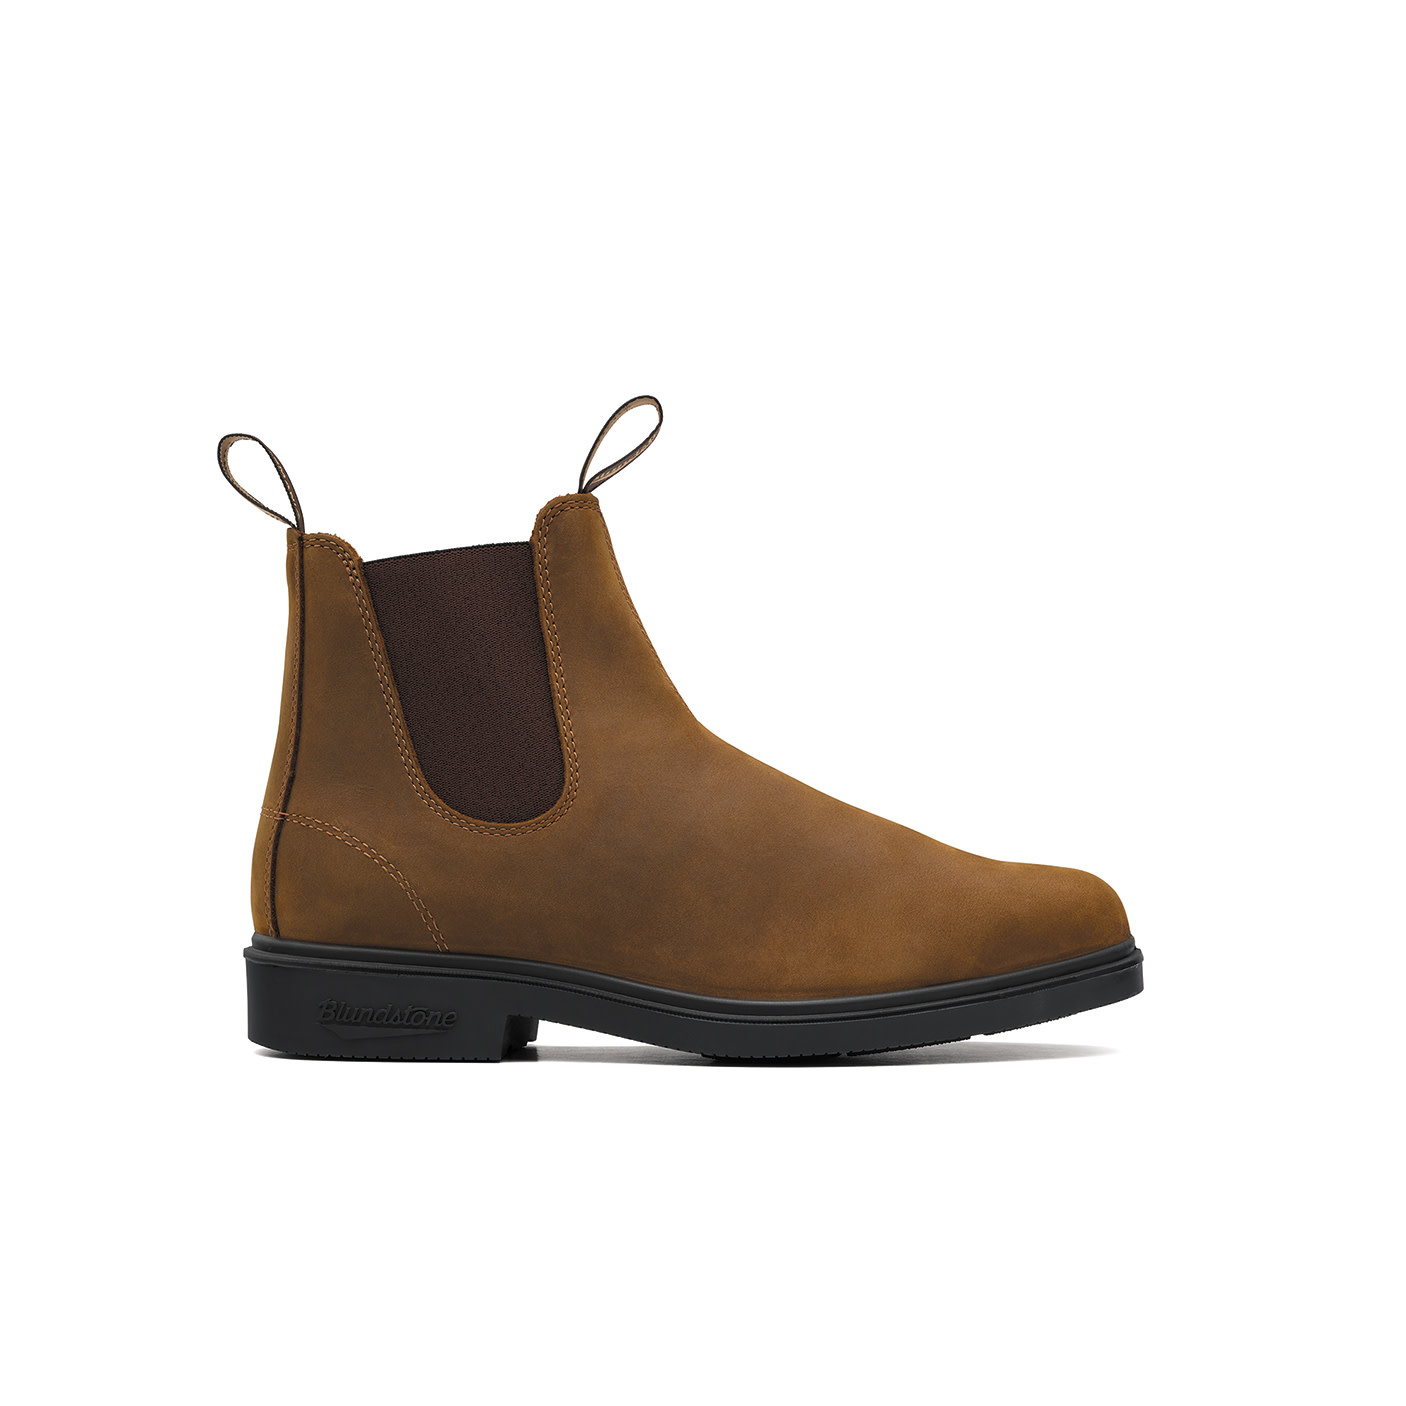 Blundstone Blundstone Chisel Toe Dress Boot 064 - Crazy Horse Brown